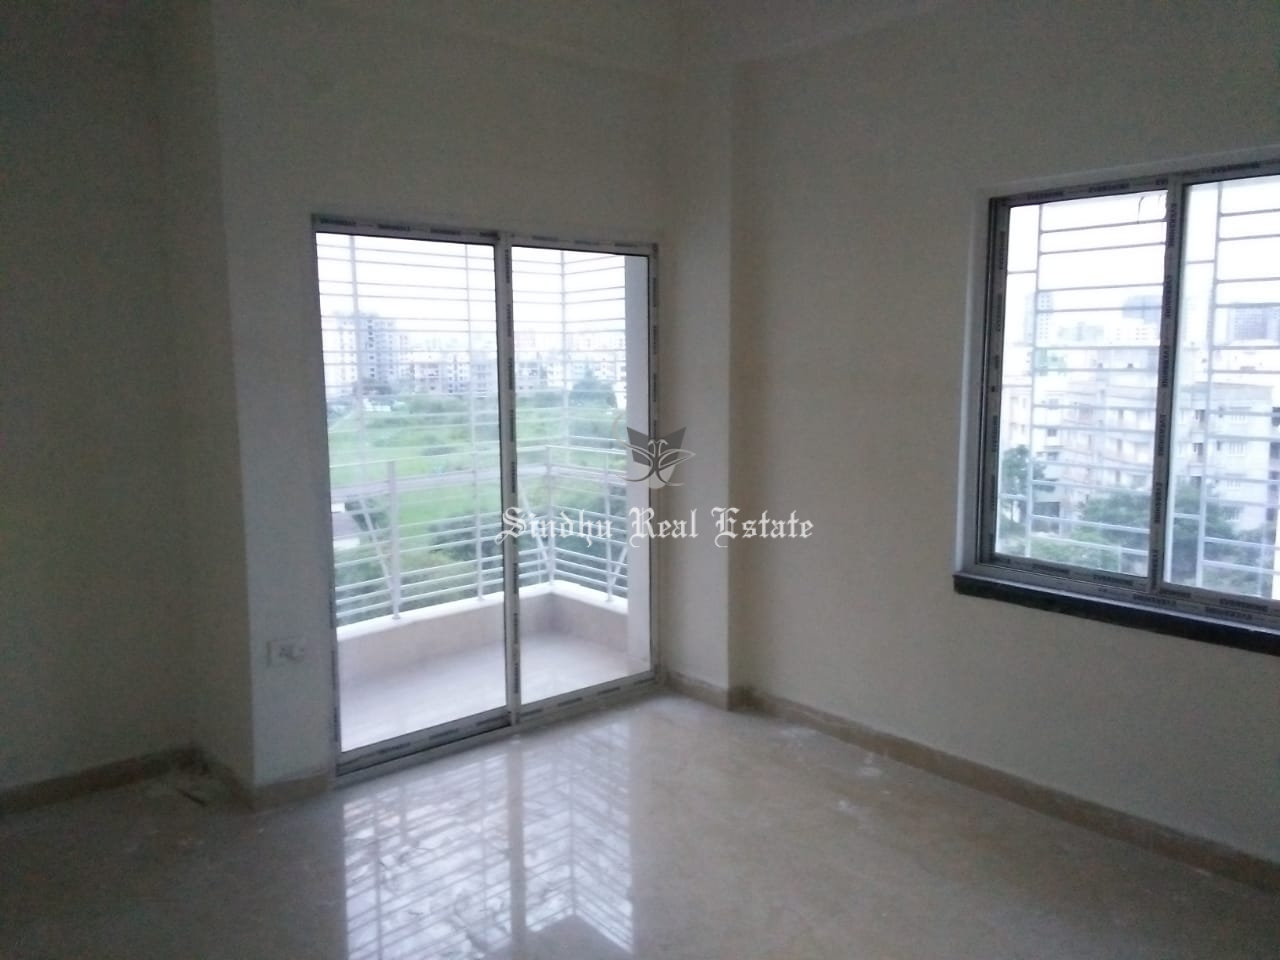 3  BHK residential flat for rent at Salt lake, sector 2.